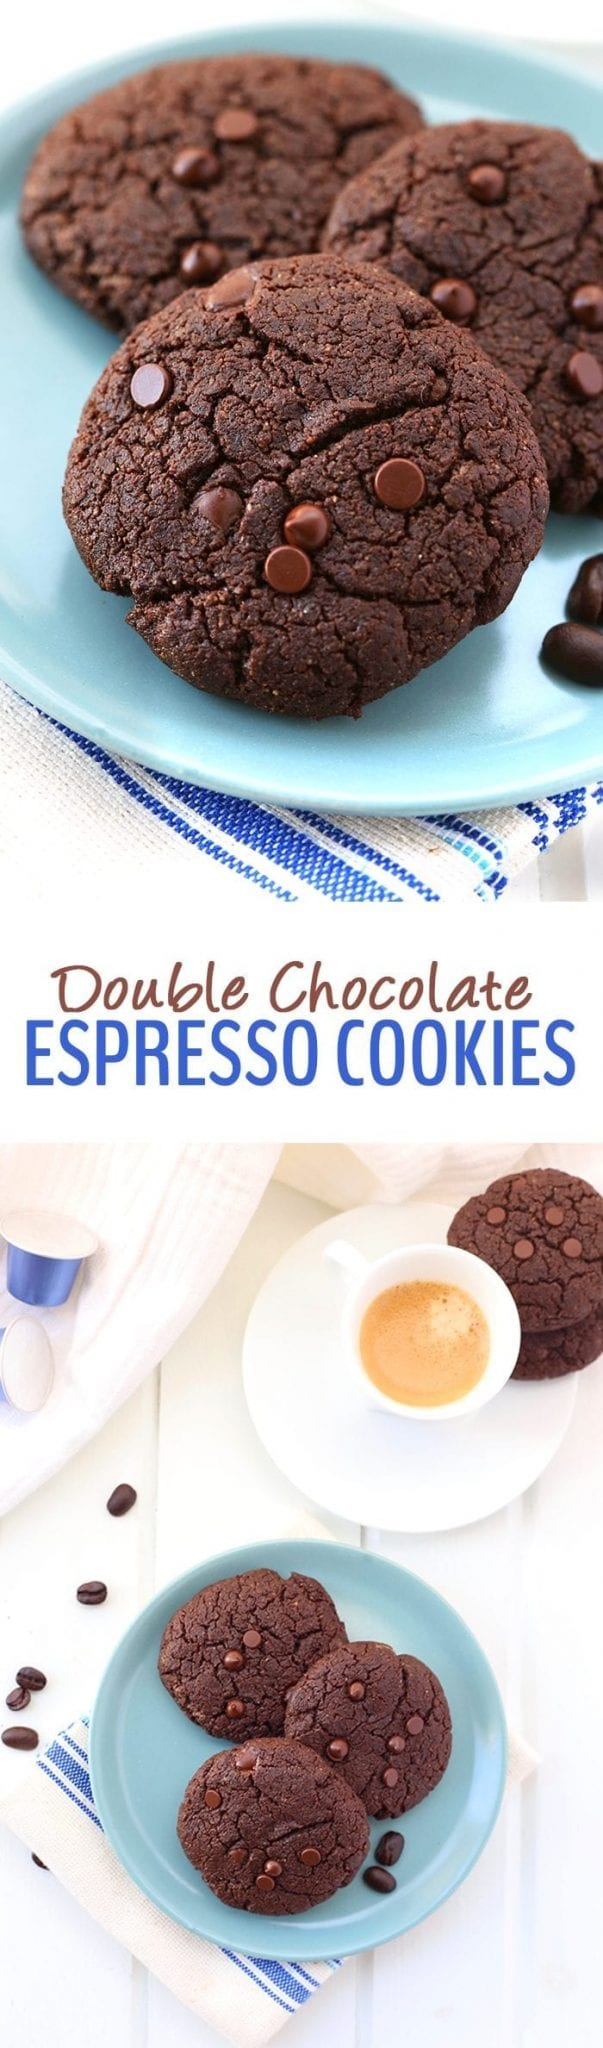 Chocolate meets coffee in these Double Chocolate Espresso Cookies. Your ultimate indulgences just got a healthy makeover with these gluten-free, vegan and paleo cookies.